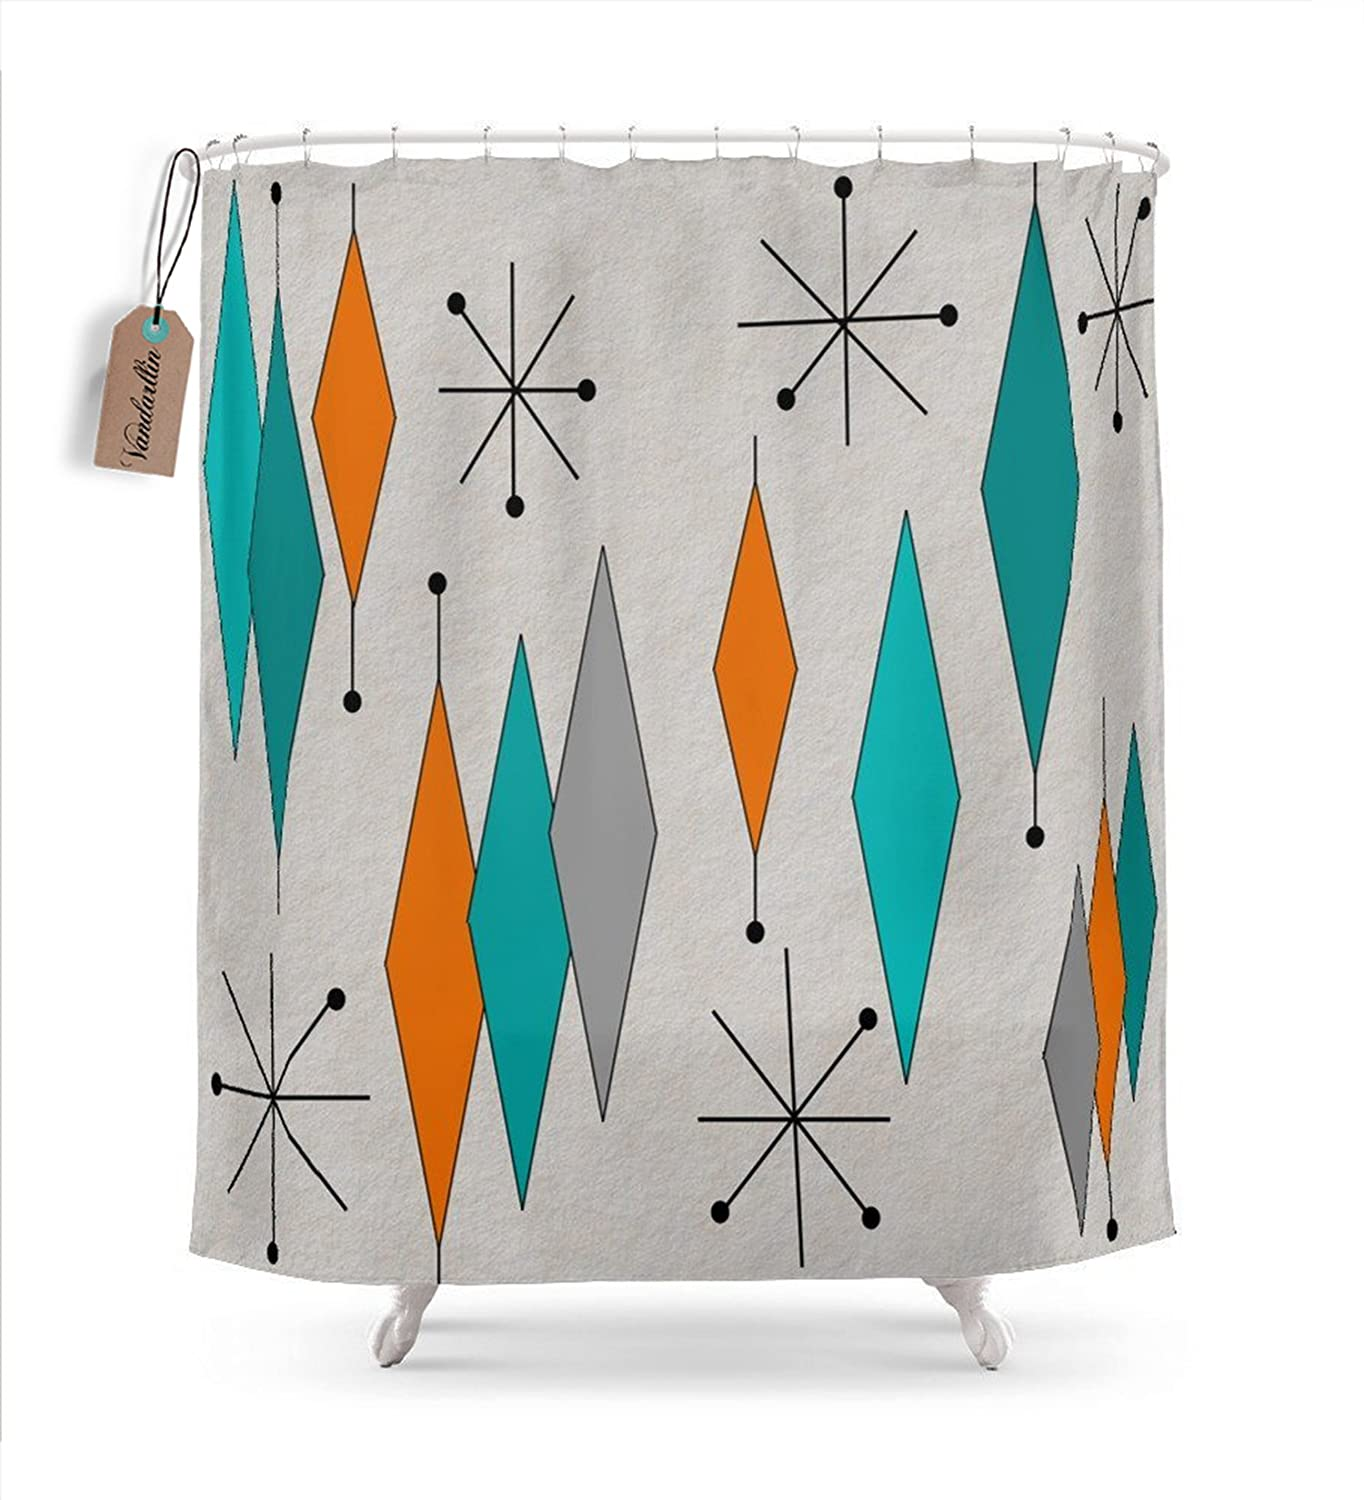 "Vandarllin Mid-Century Modern Diamond Pattern Shower Curtain, 72"" x 78"" Extra Long, Mildew Resistant Waterproof Decorations Bath Curtains,Multicolor"